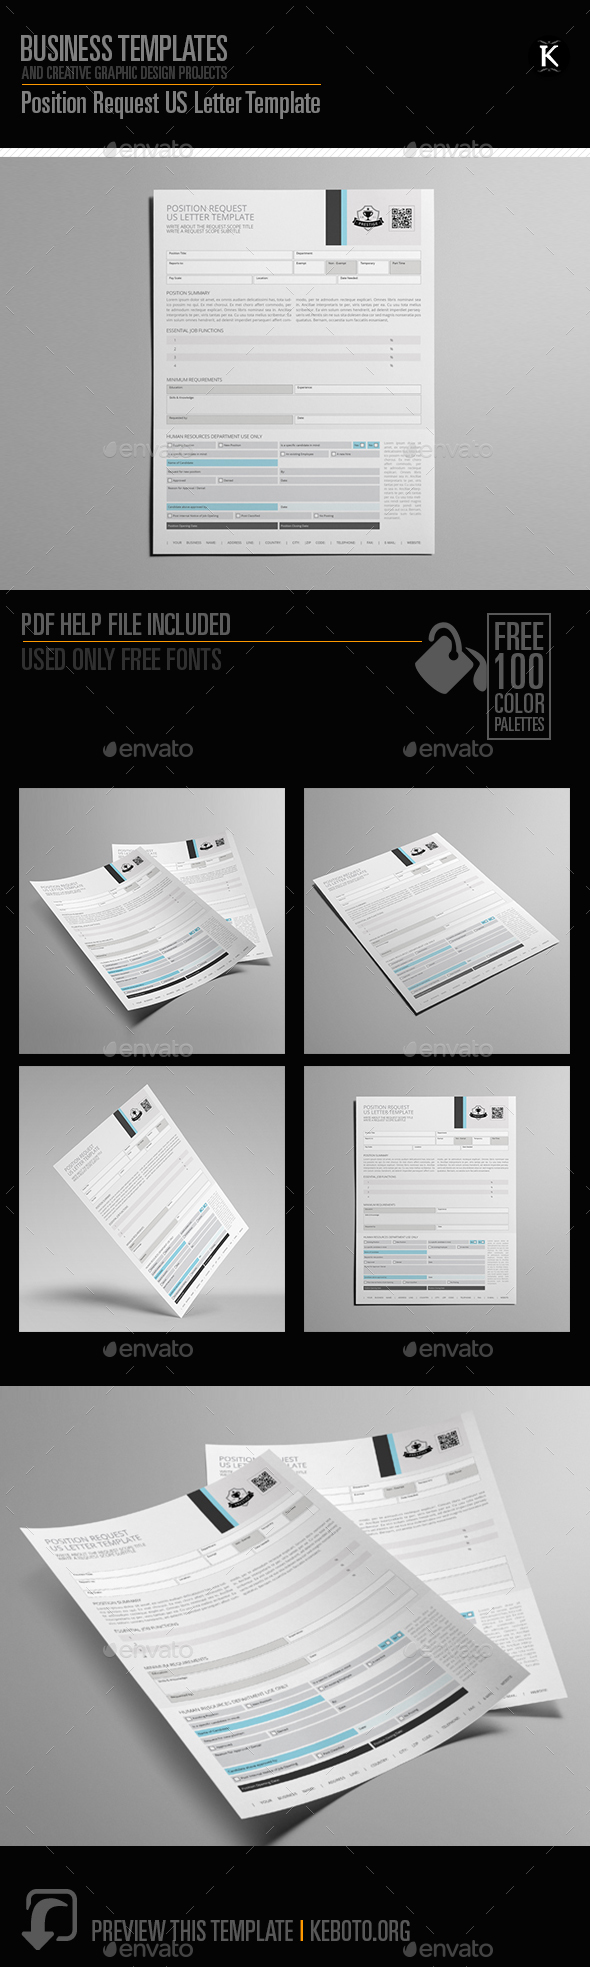 GraphicRiver Position Request US Letter Template 20555770